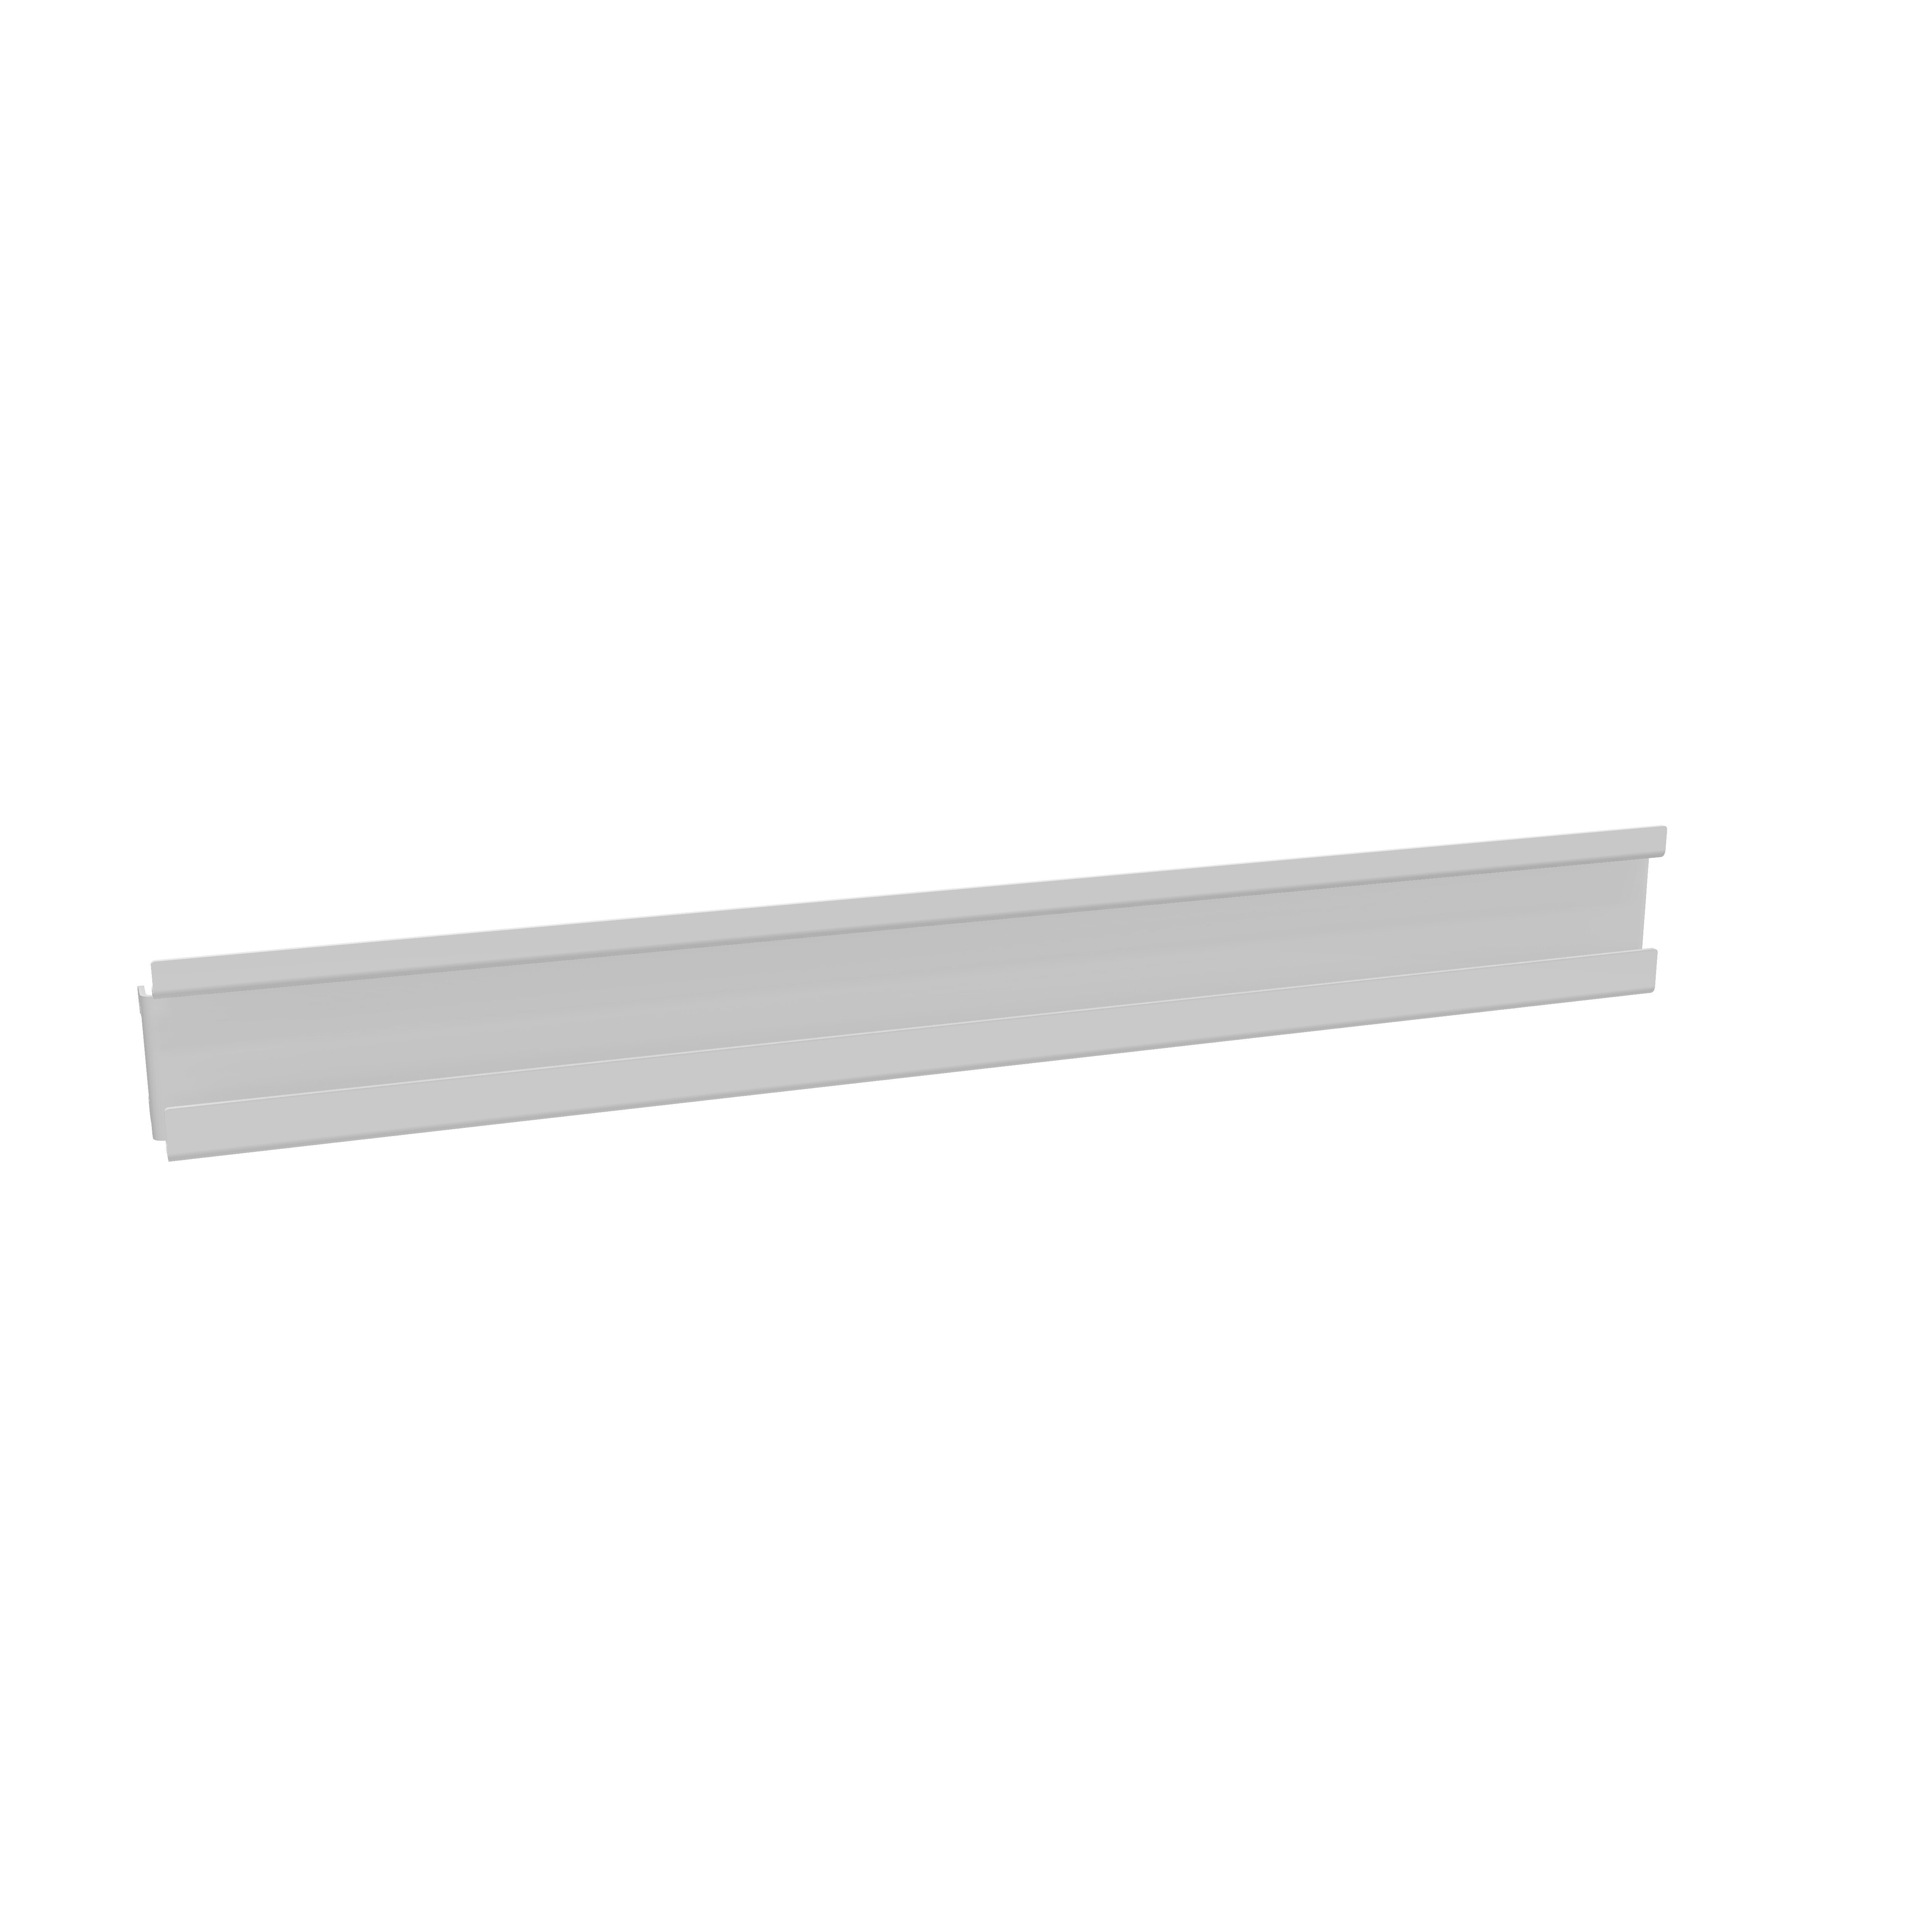 VS Drawer Mounting Rail 100 ESD